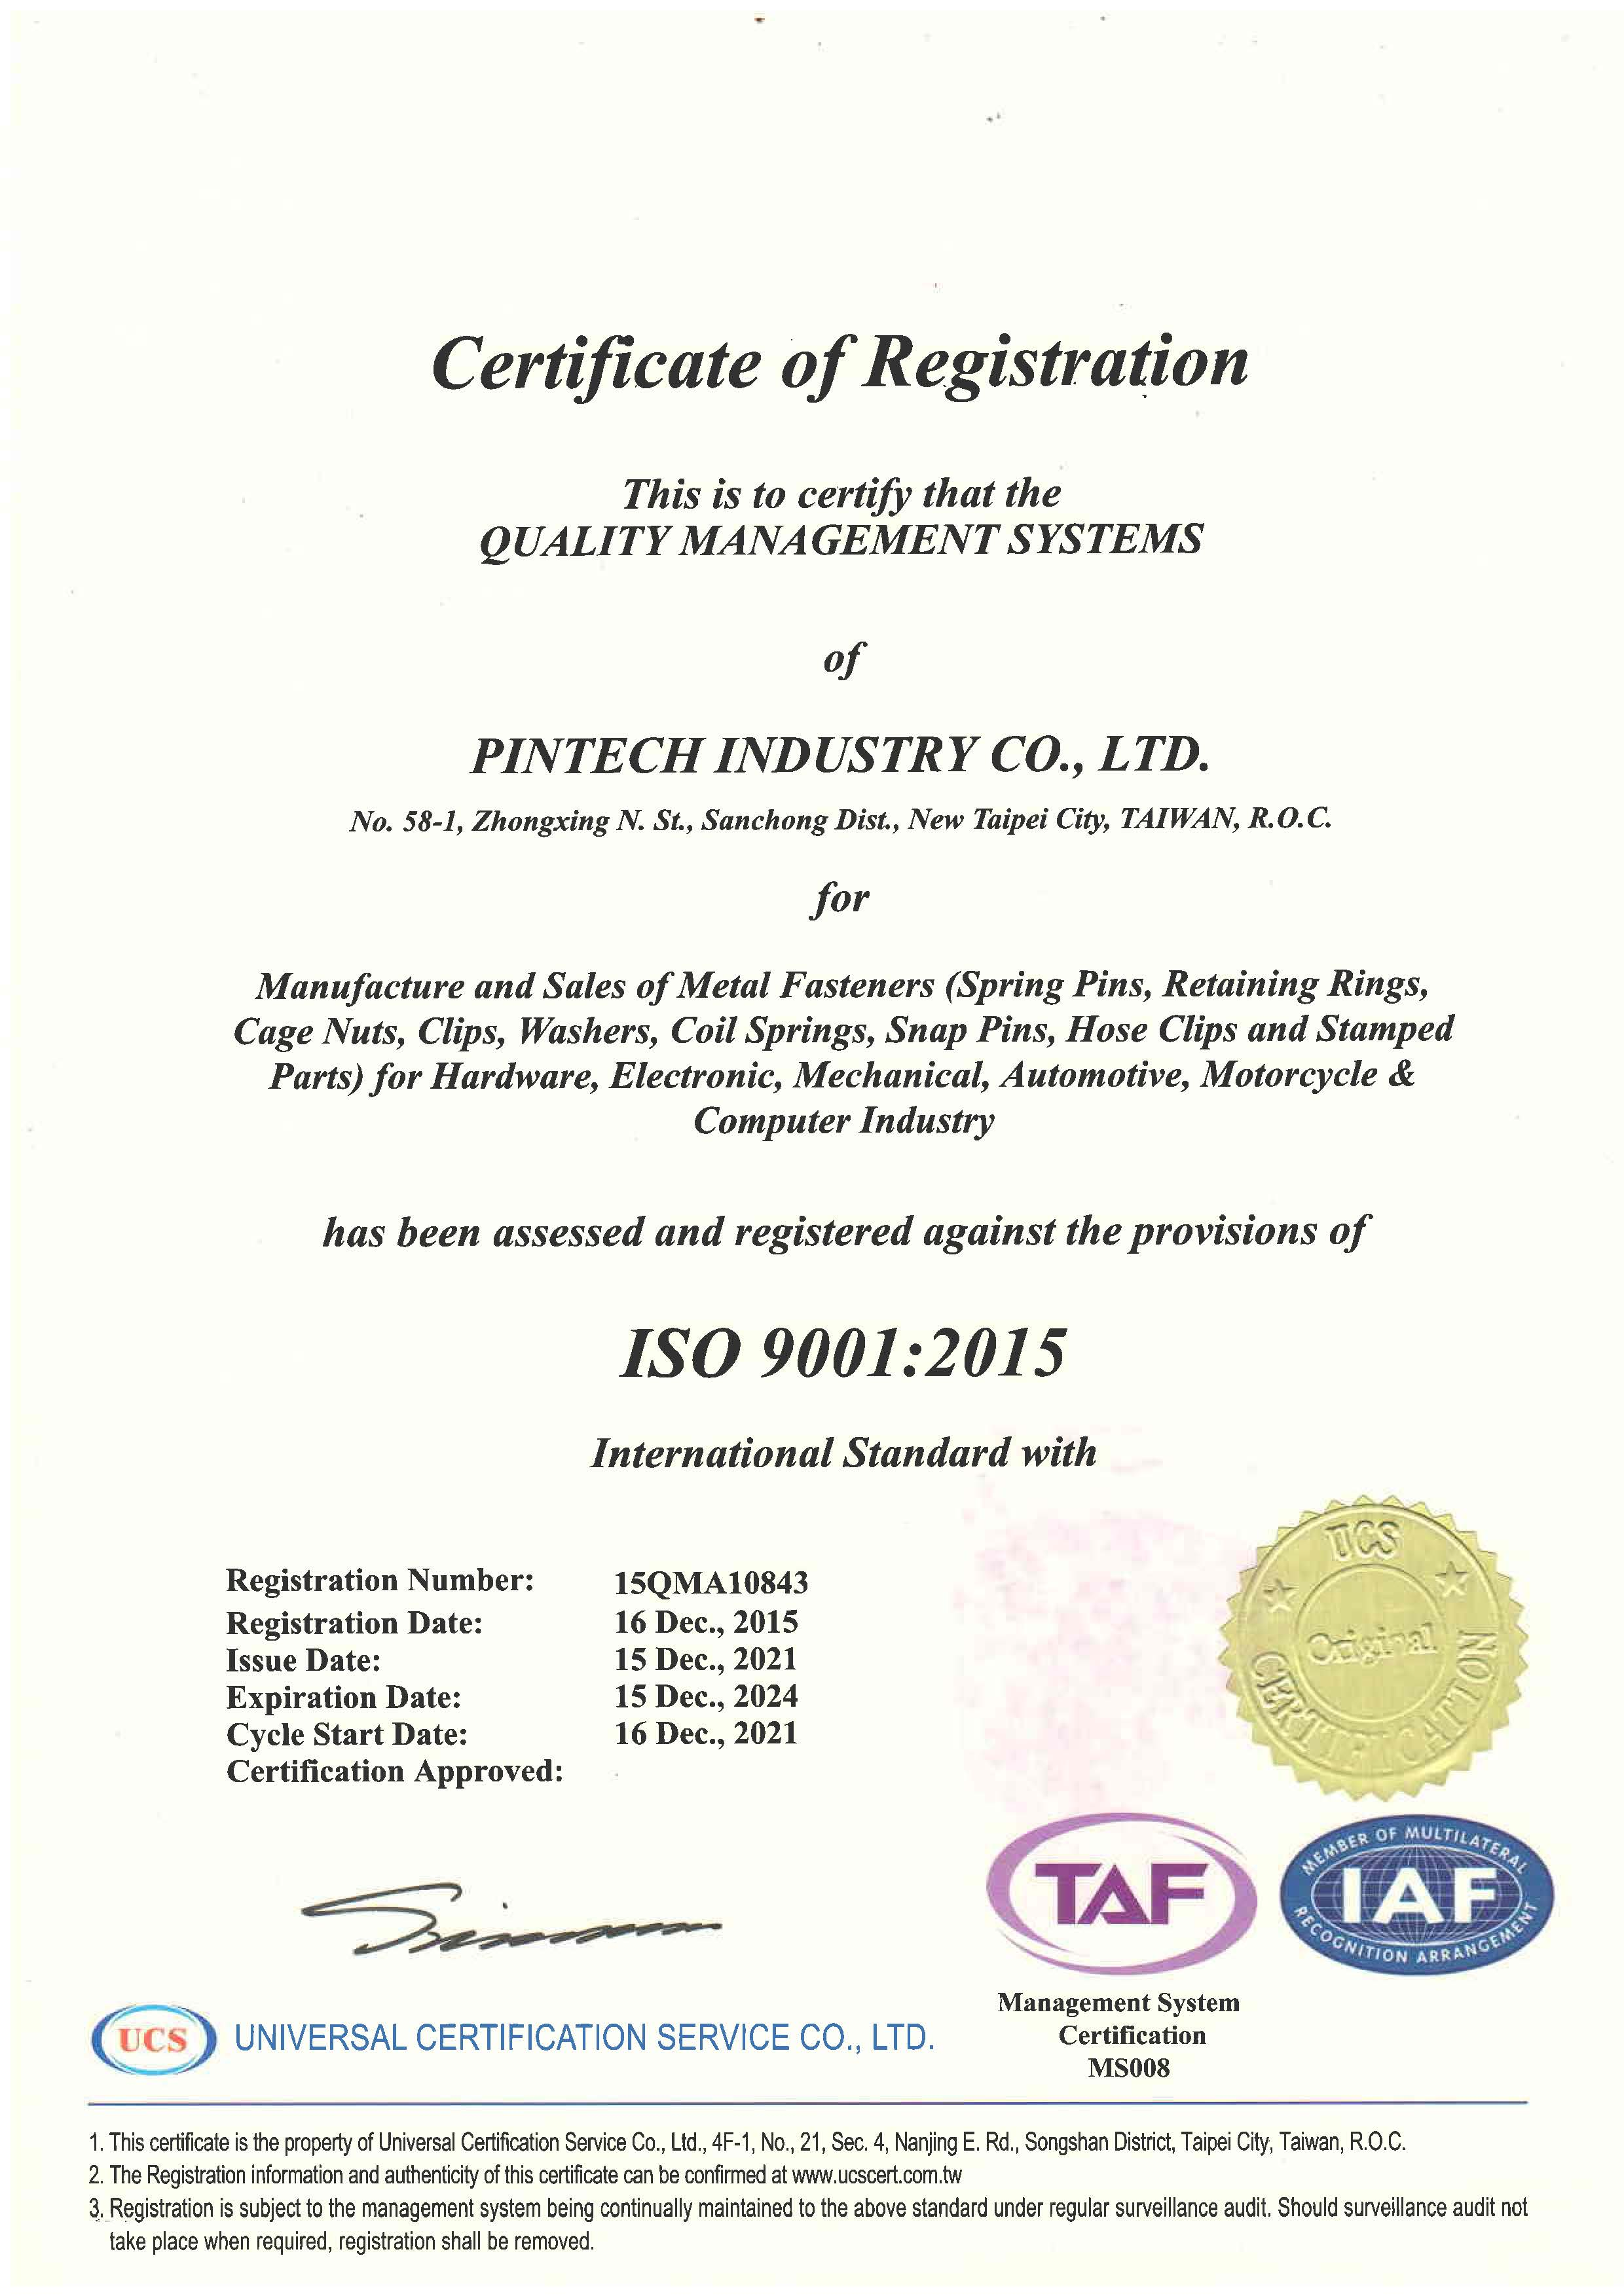 ISO 9001:2015 Cetificate of Registration